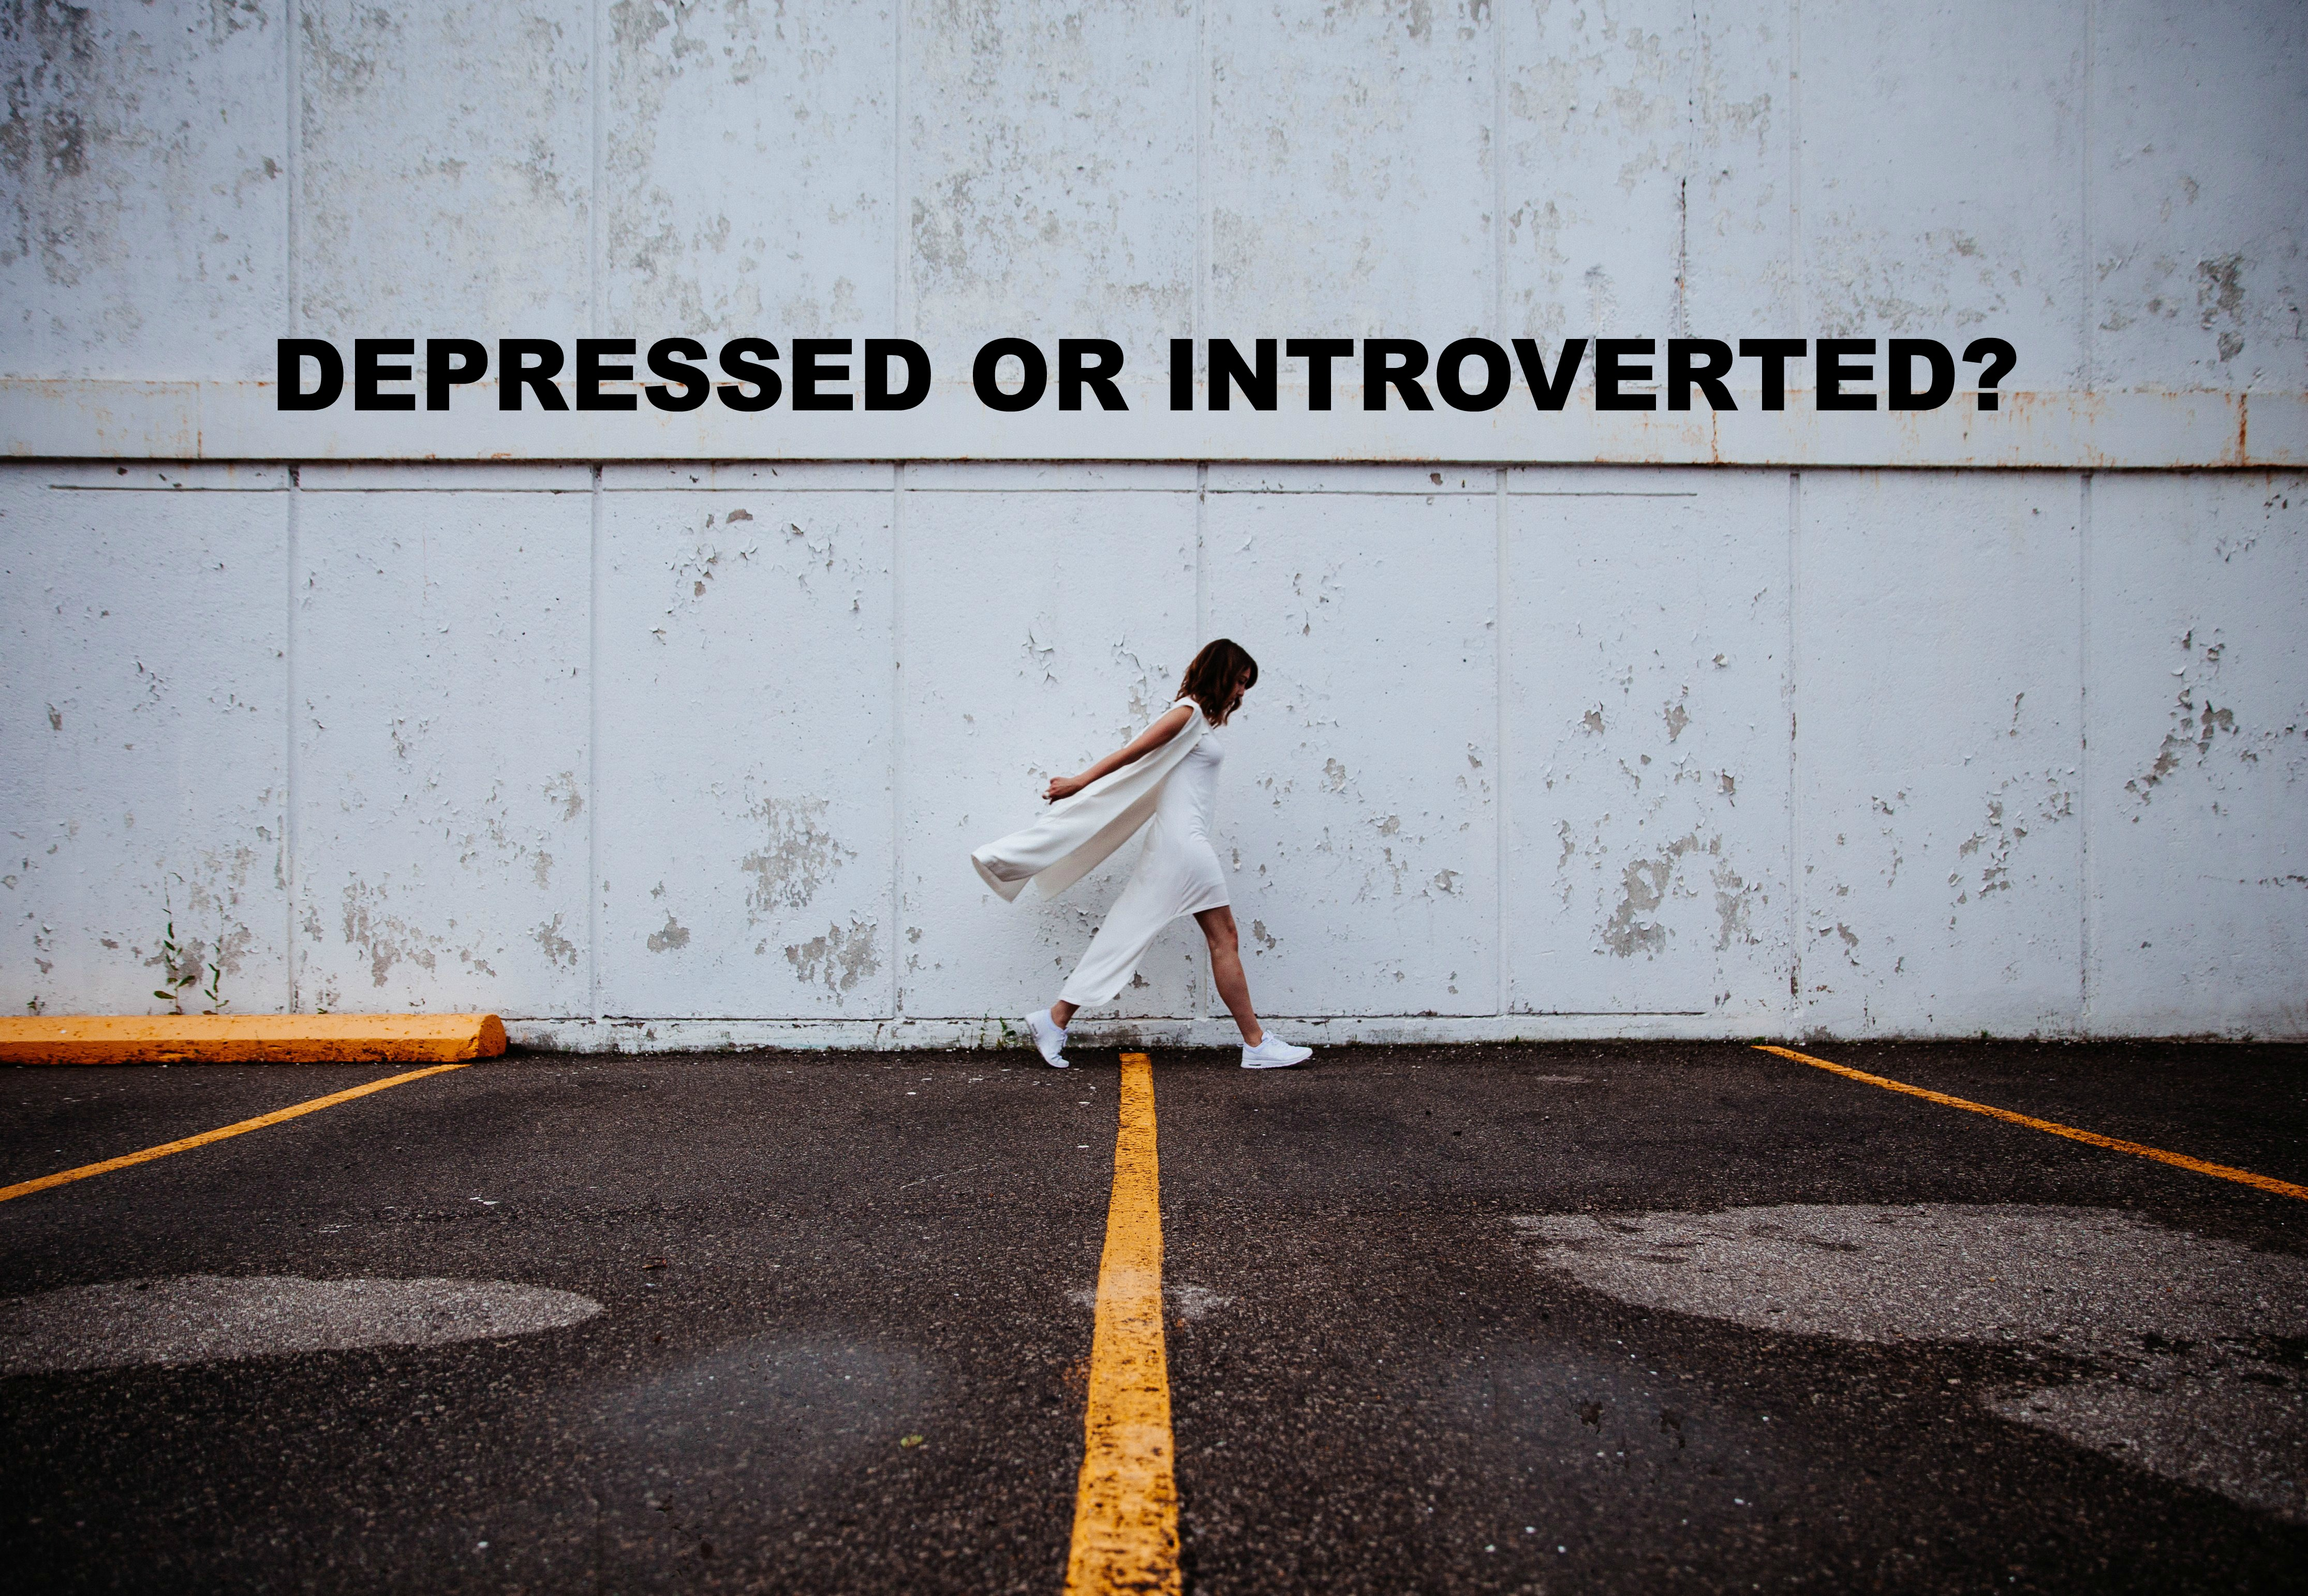 Depressed or introverted? What your therapist won't tell you